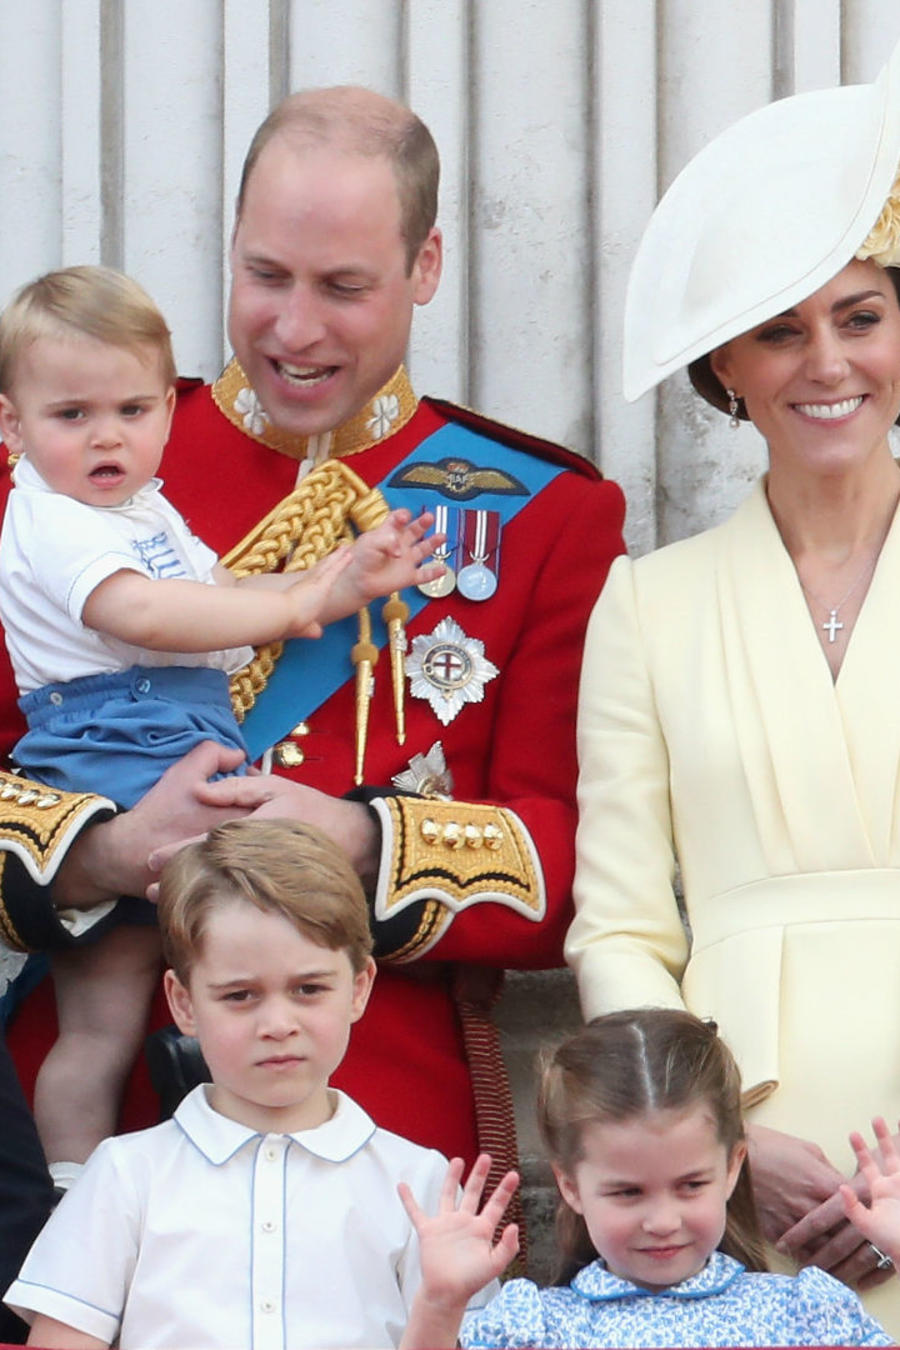 Príncipe William con Kate Middleton e hijos